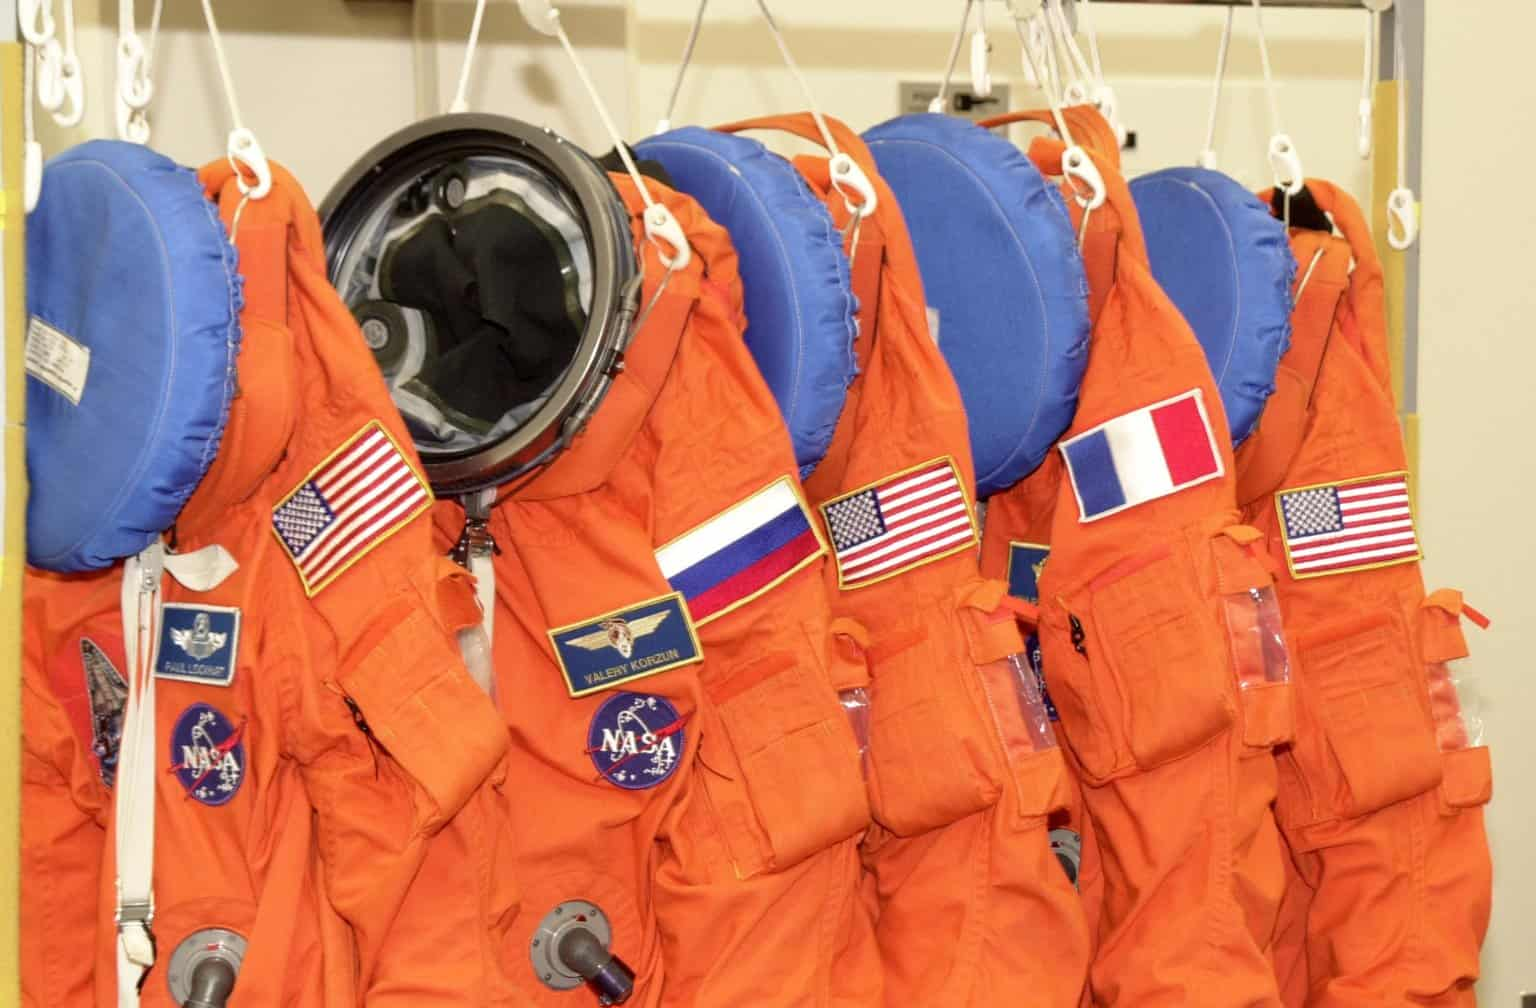 What's up with Space Medicine?